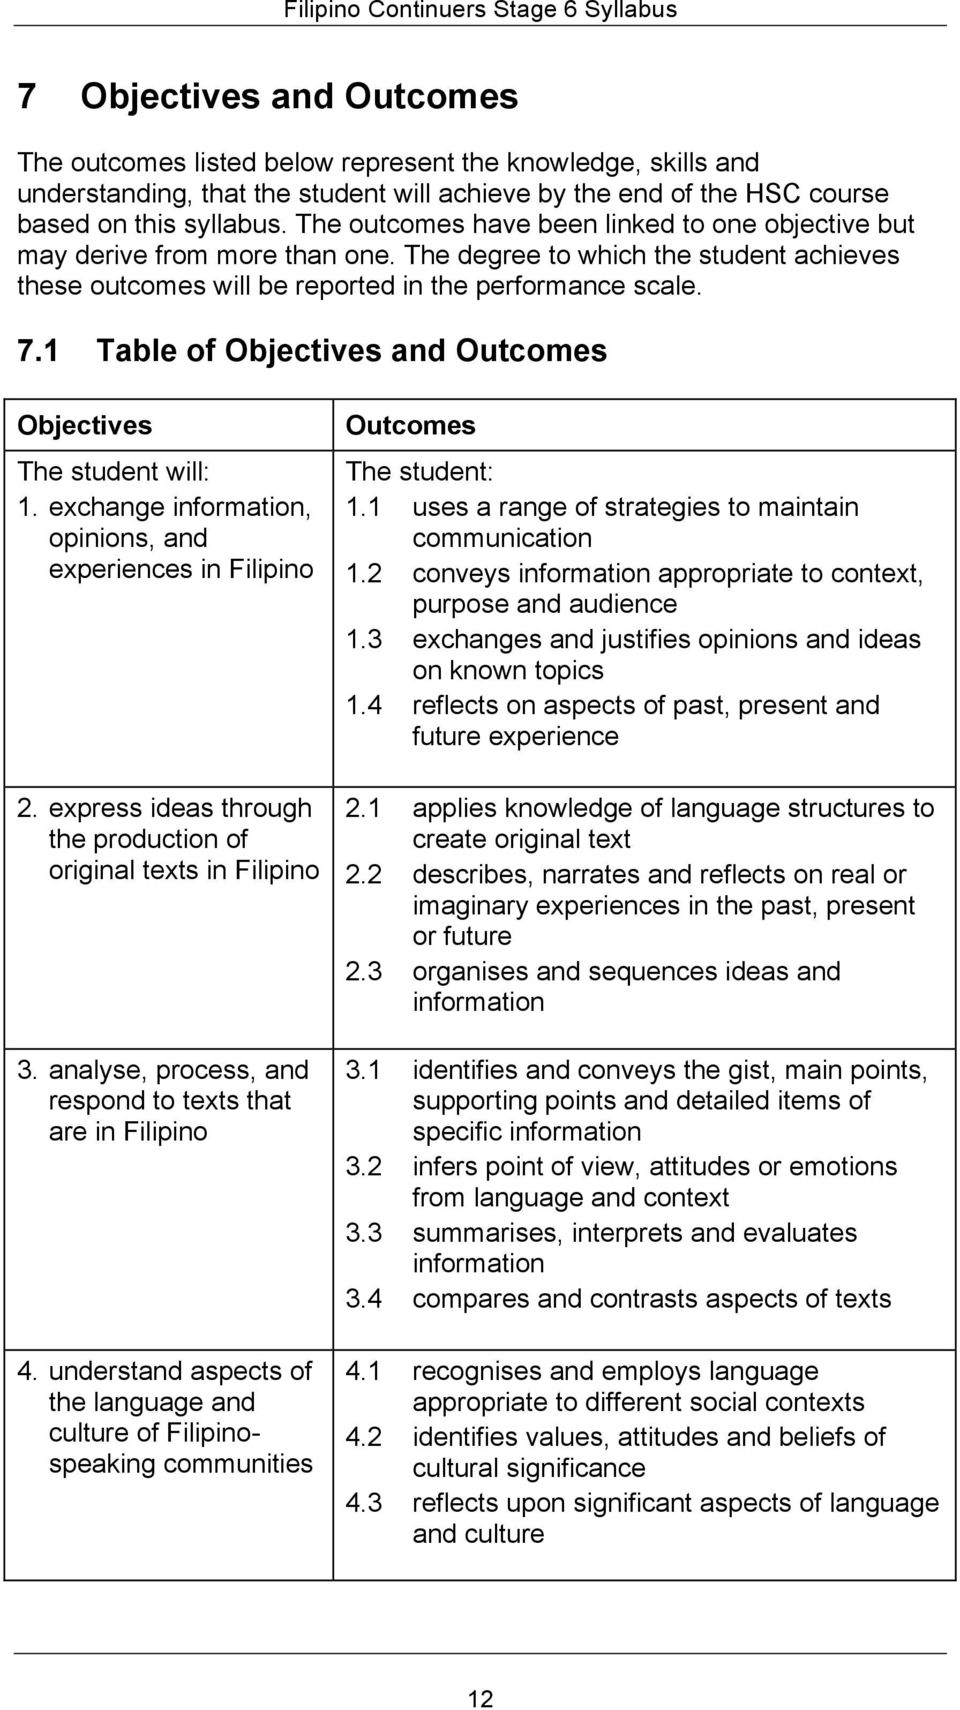 1 Table of Objectives and Outcomes Objectives The student will: 1. exchange information, opinions, and experiences in Filipino 2. express ideas through the production of original texts in Filipino 3.